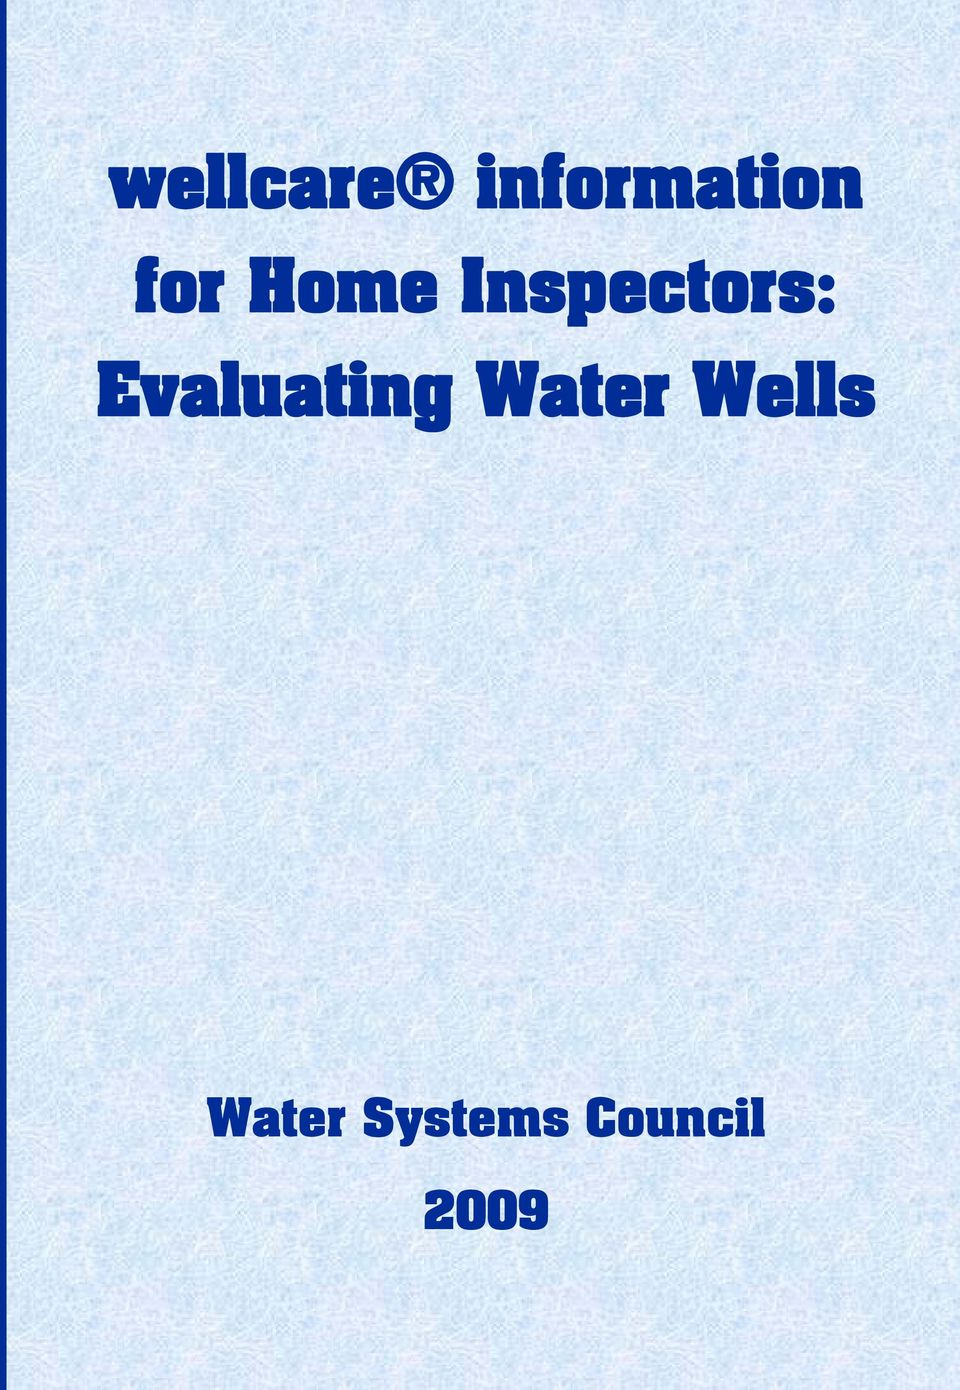 1  Inspectors: Evaluating Water Wells